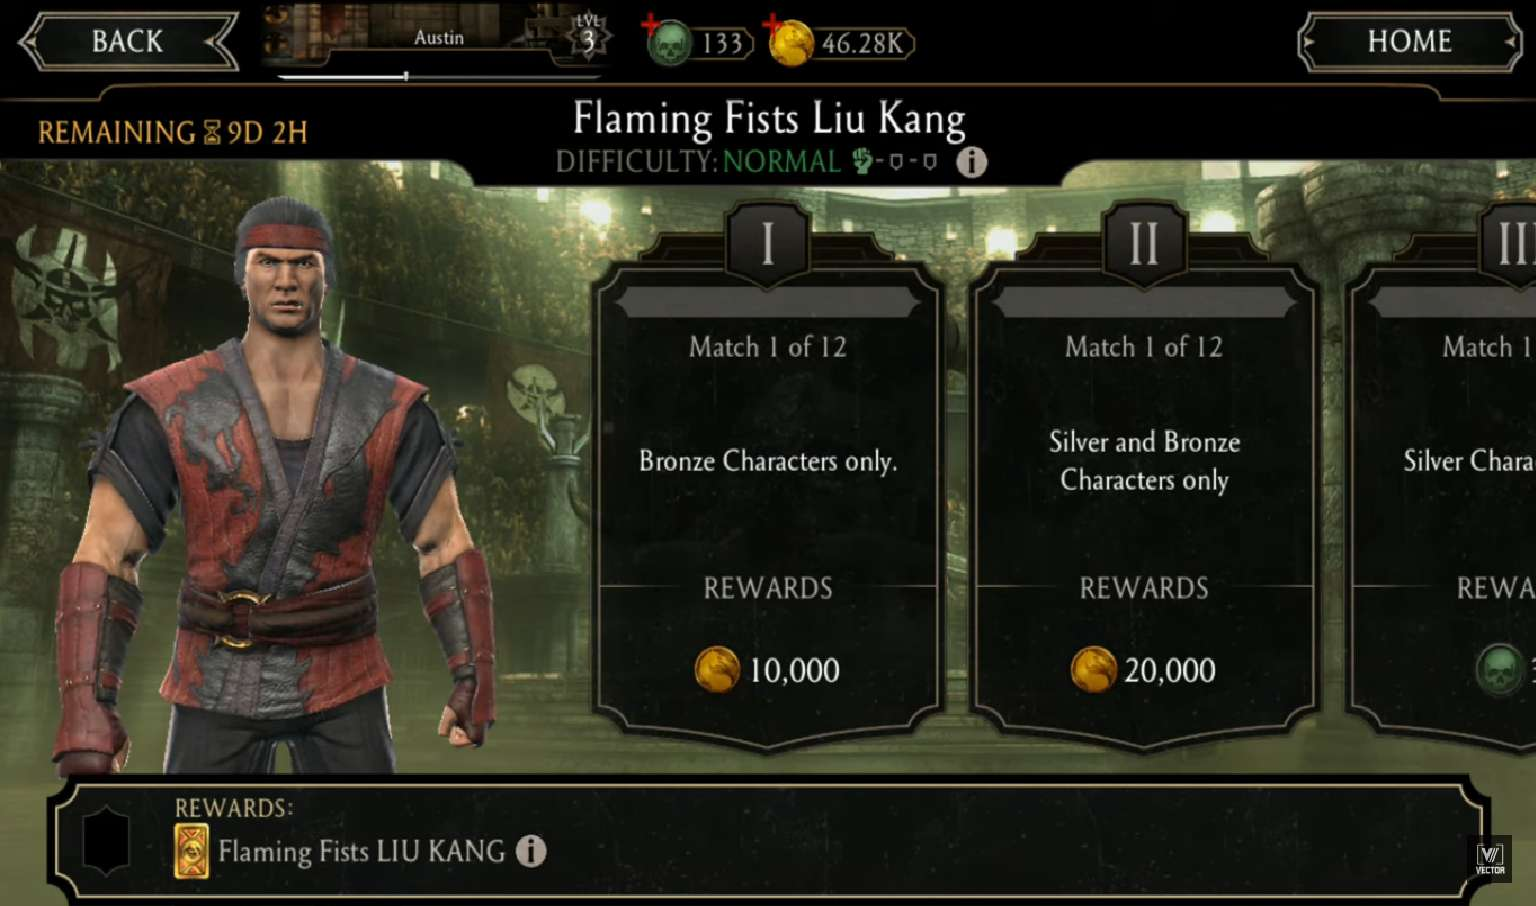 Flaming Fists Lui Kang Burns Players As They Fight Their Way Through His Weekly Towers In Mortal Kombat Mobile